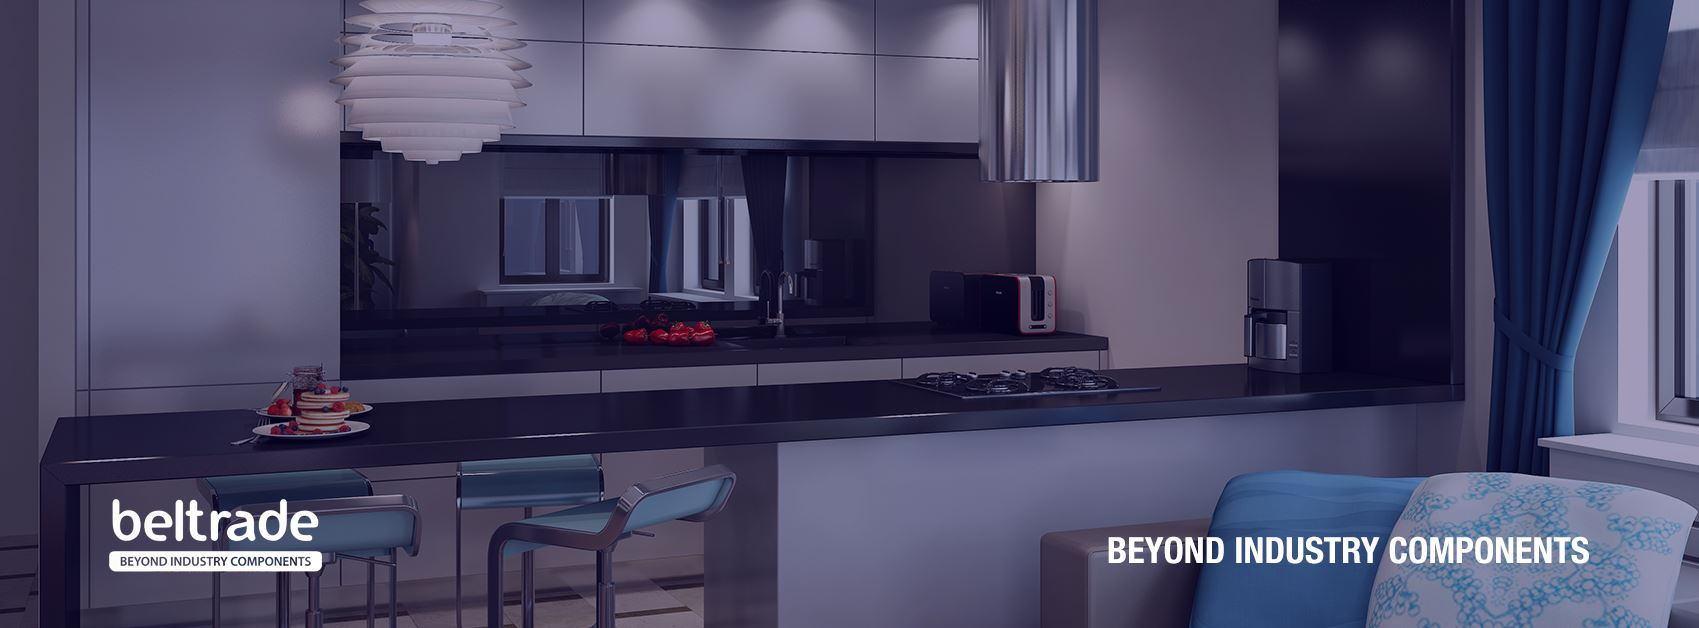 BELTRADE: HOME APPLIANCES OF THE FUTURE